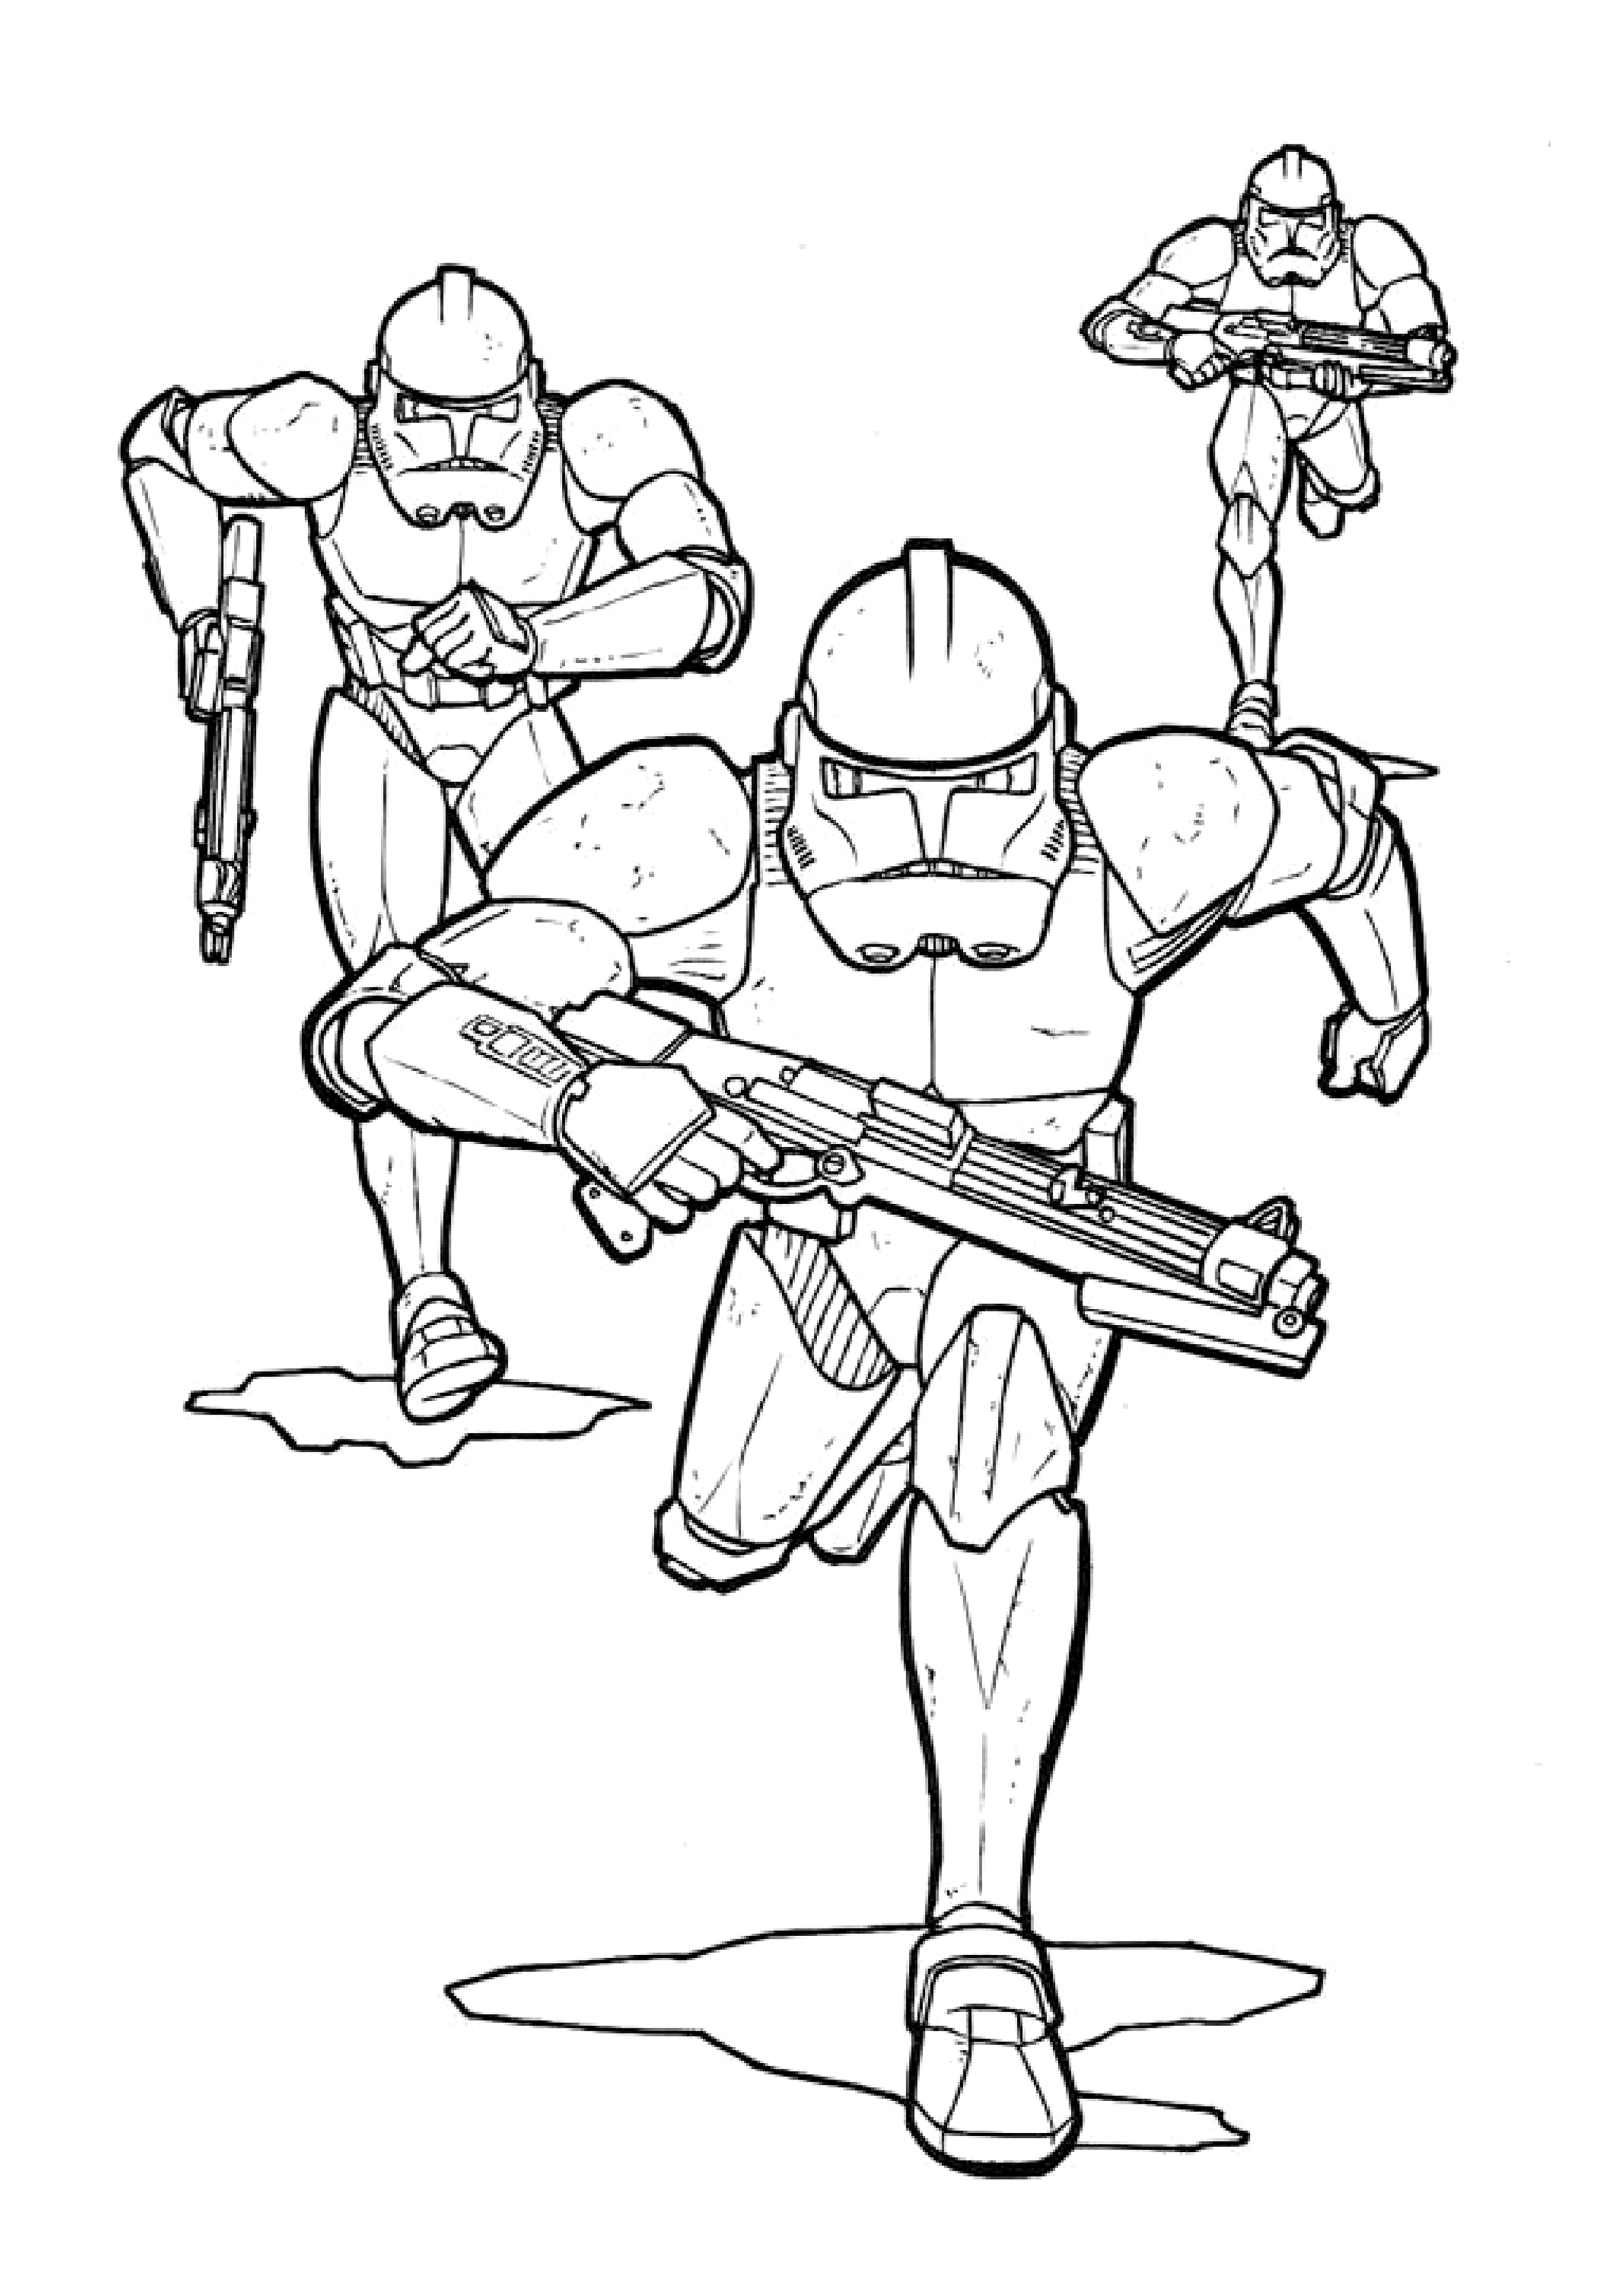 star wars pictures to color star wars free to color for kids star wars kids coloring color wars star to pictures